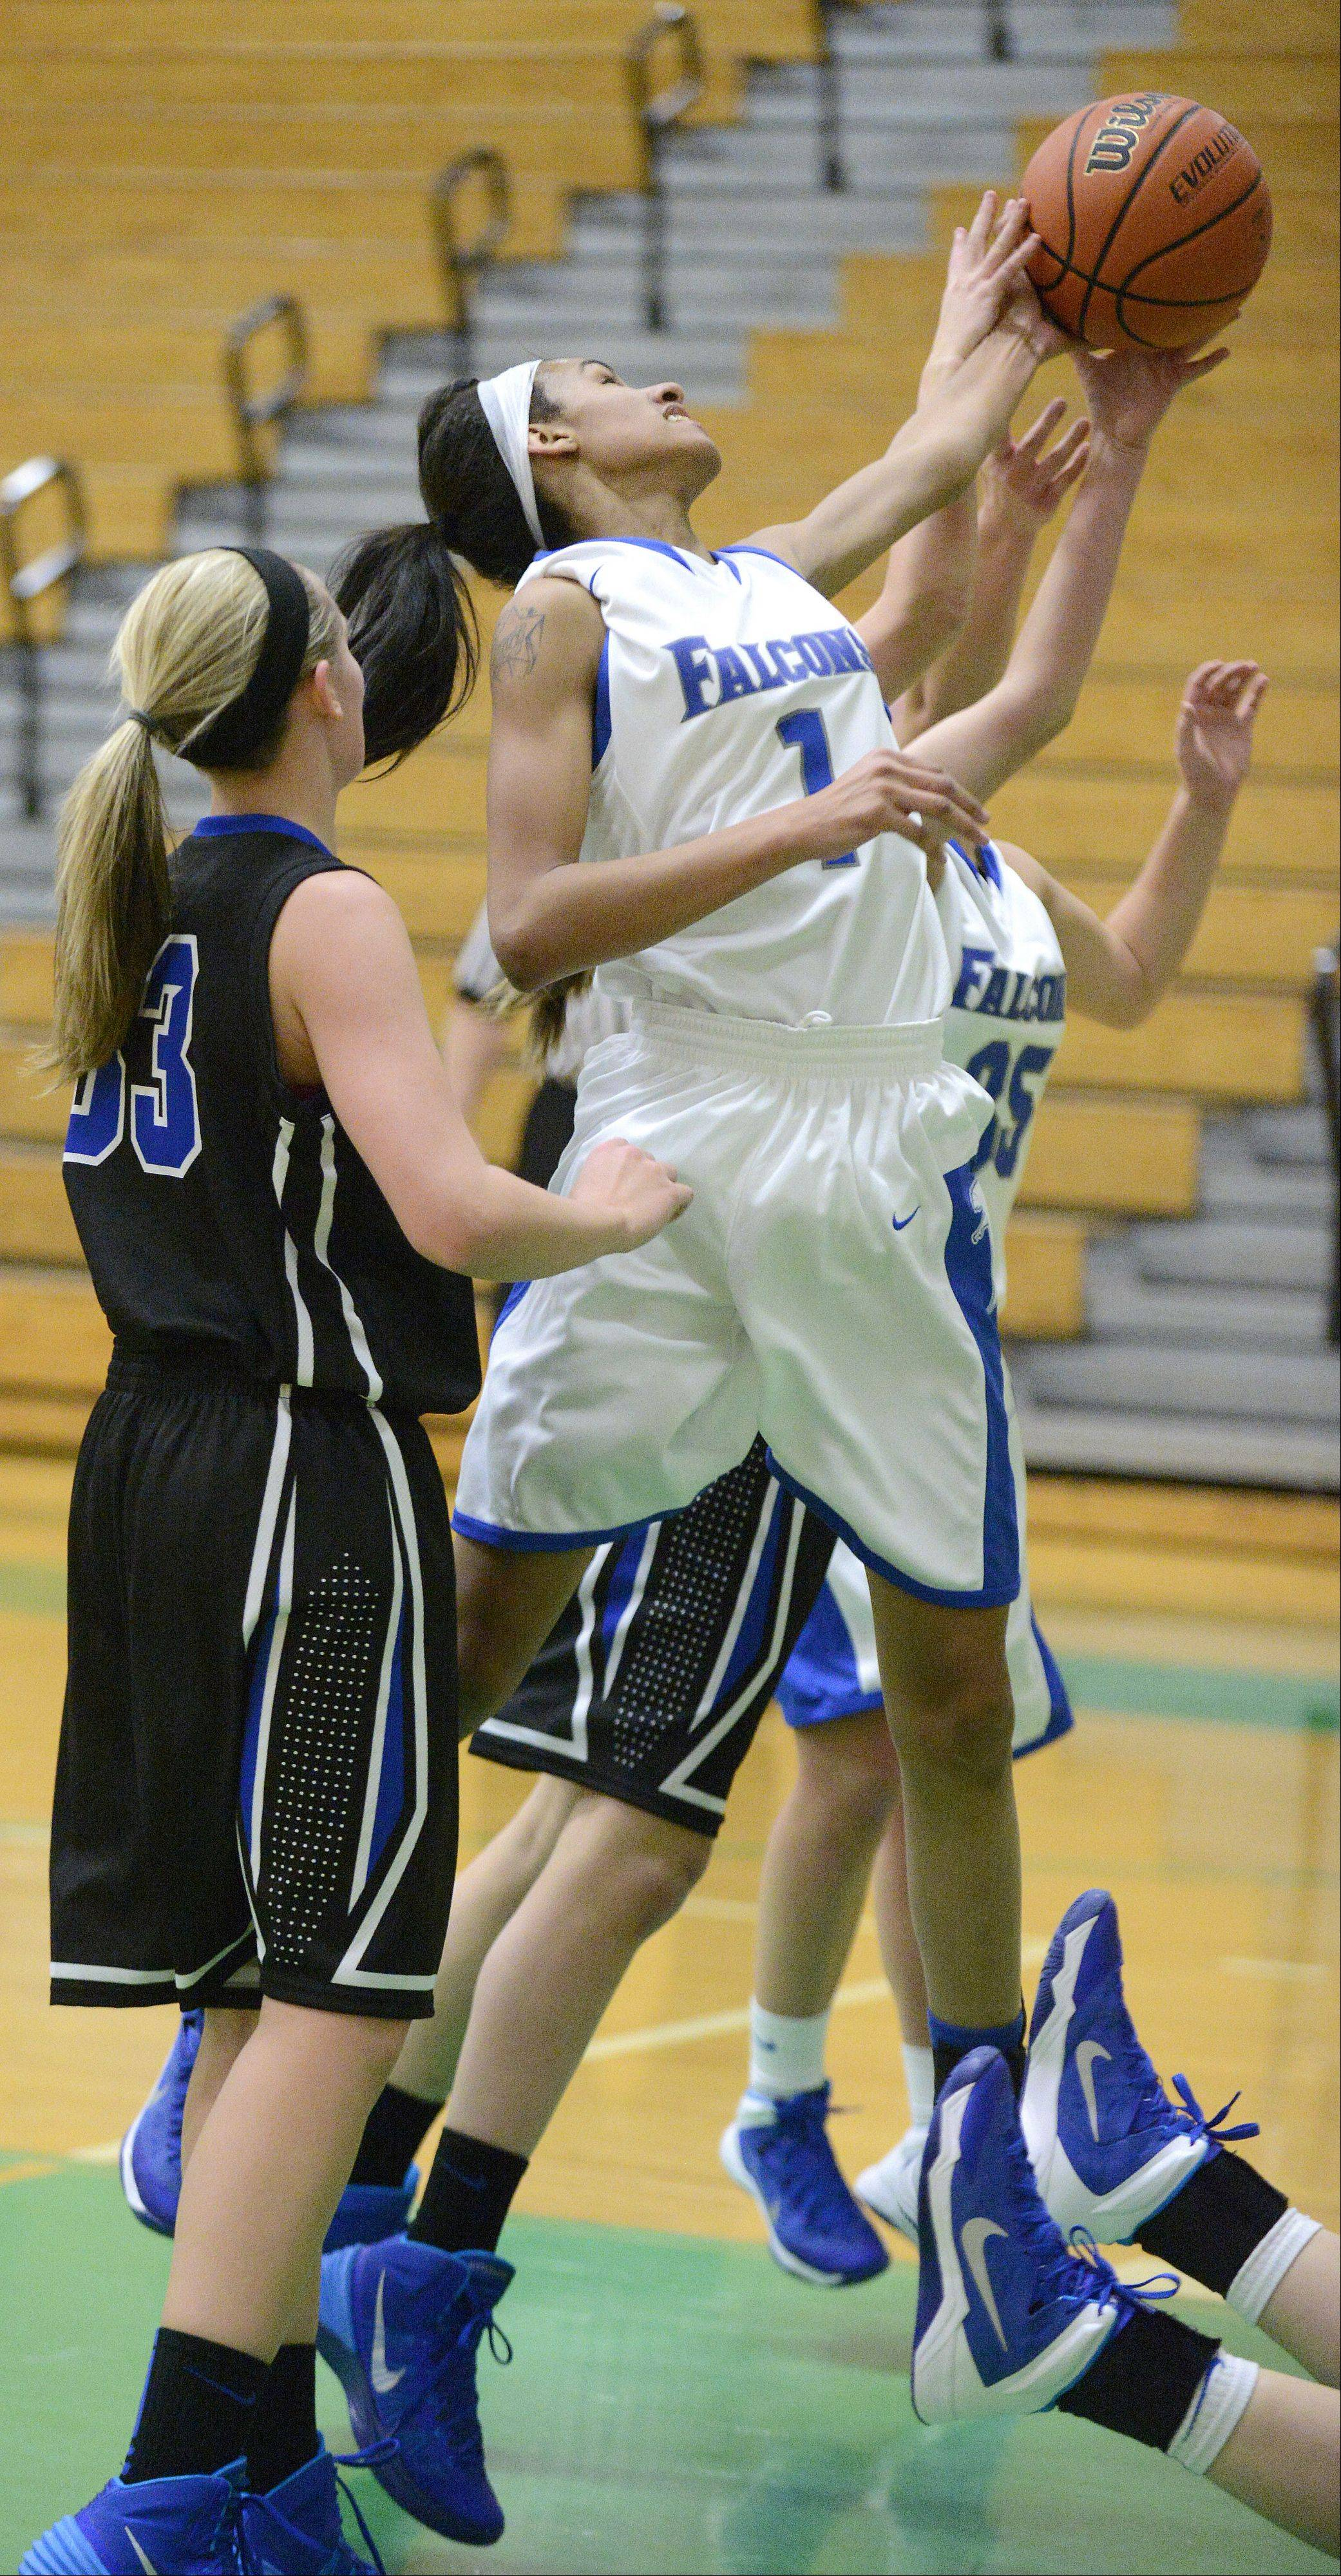 Wheaton North�s Emari Jones fights for a rebound in the first quarter on Friday, November 22.